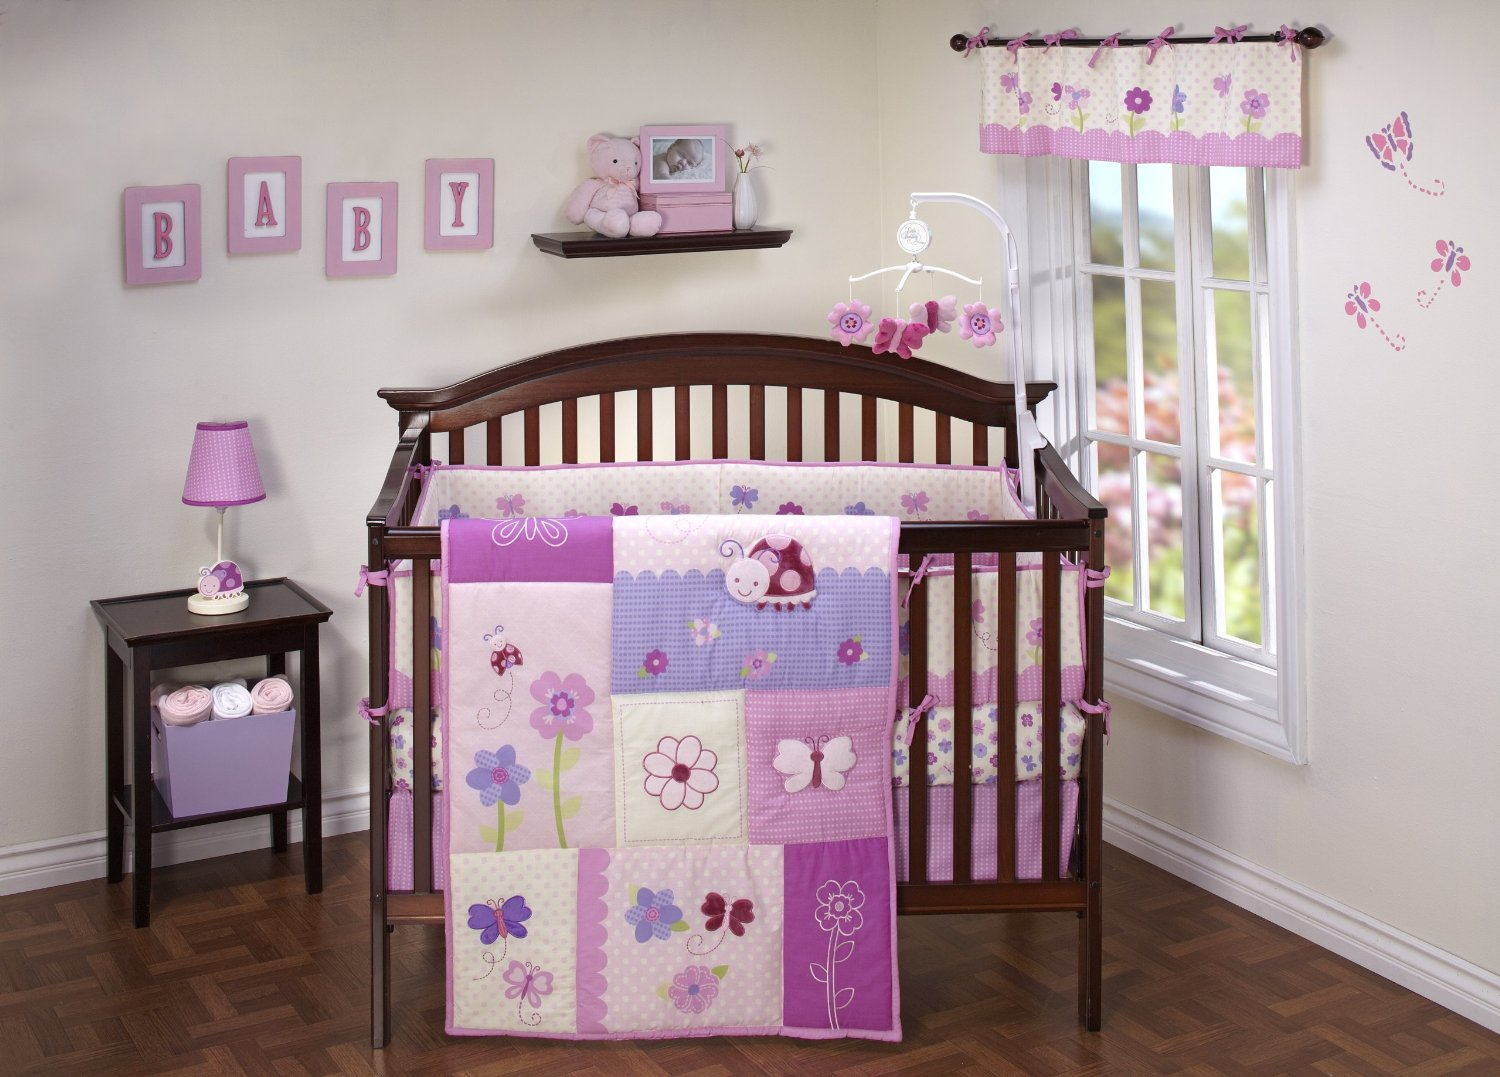 Nojo Little Bedding Little Flowers Crib Bedding Baby Bedding And